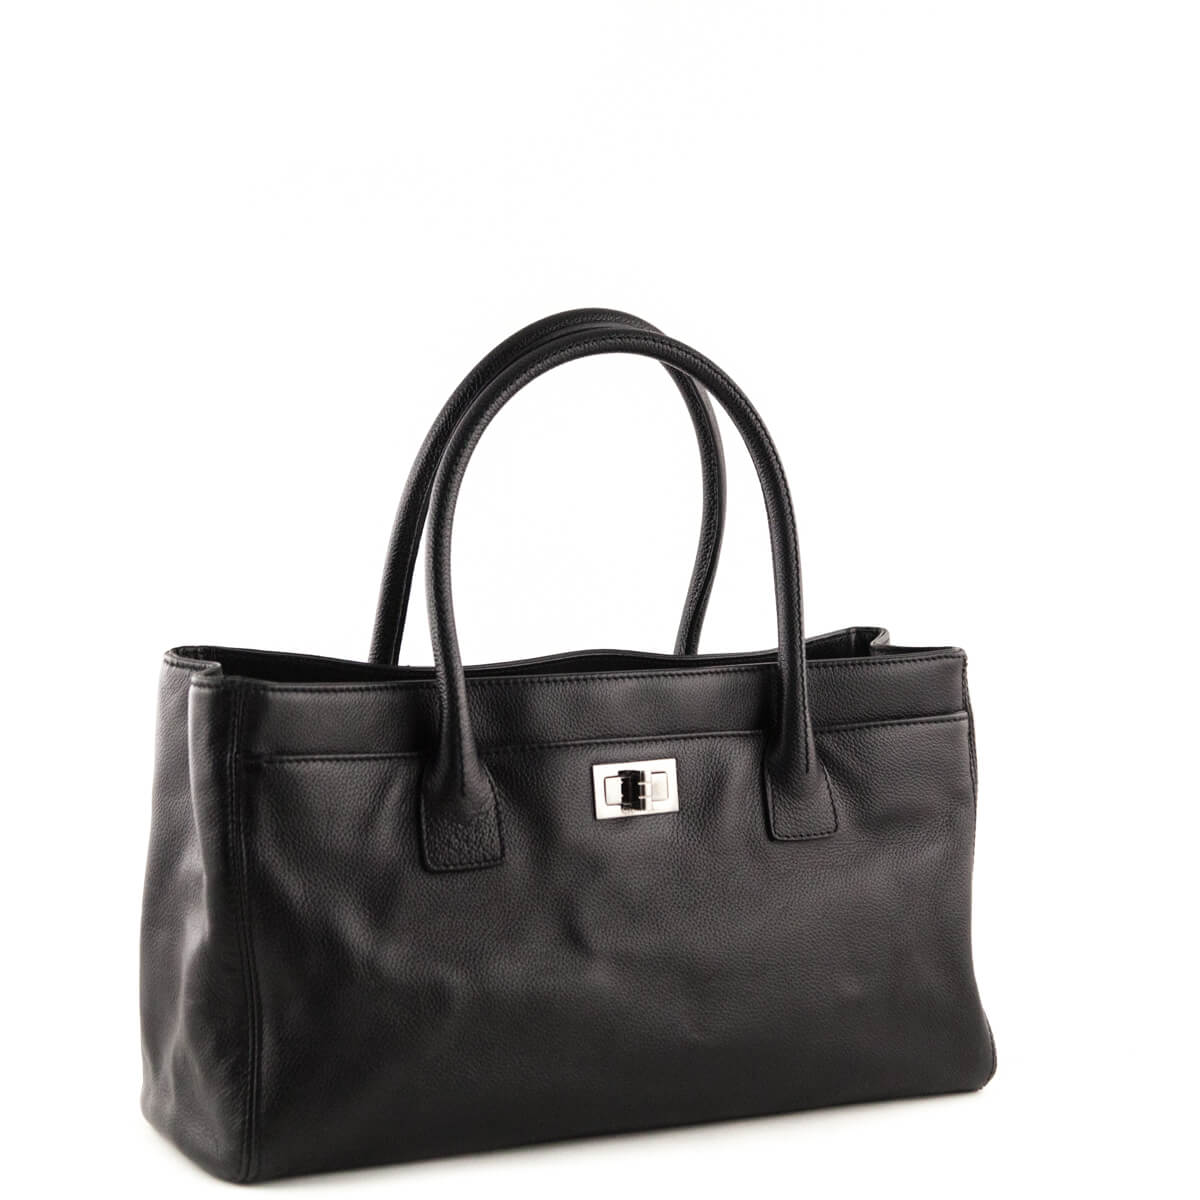 ab91dc9f50f7 ... Chanel Black Cerf E W Reissue Tote Bag - LOVE that BAG - Preowned  Authentic ...